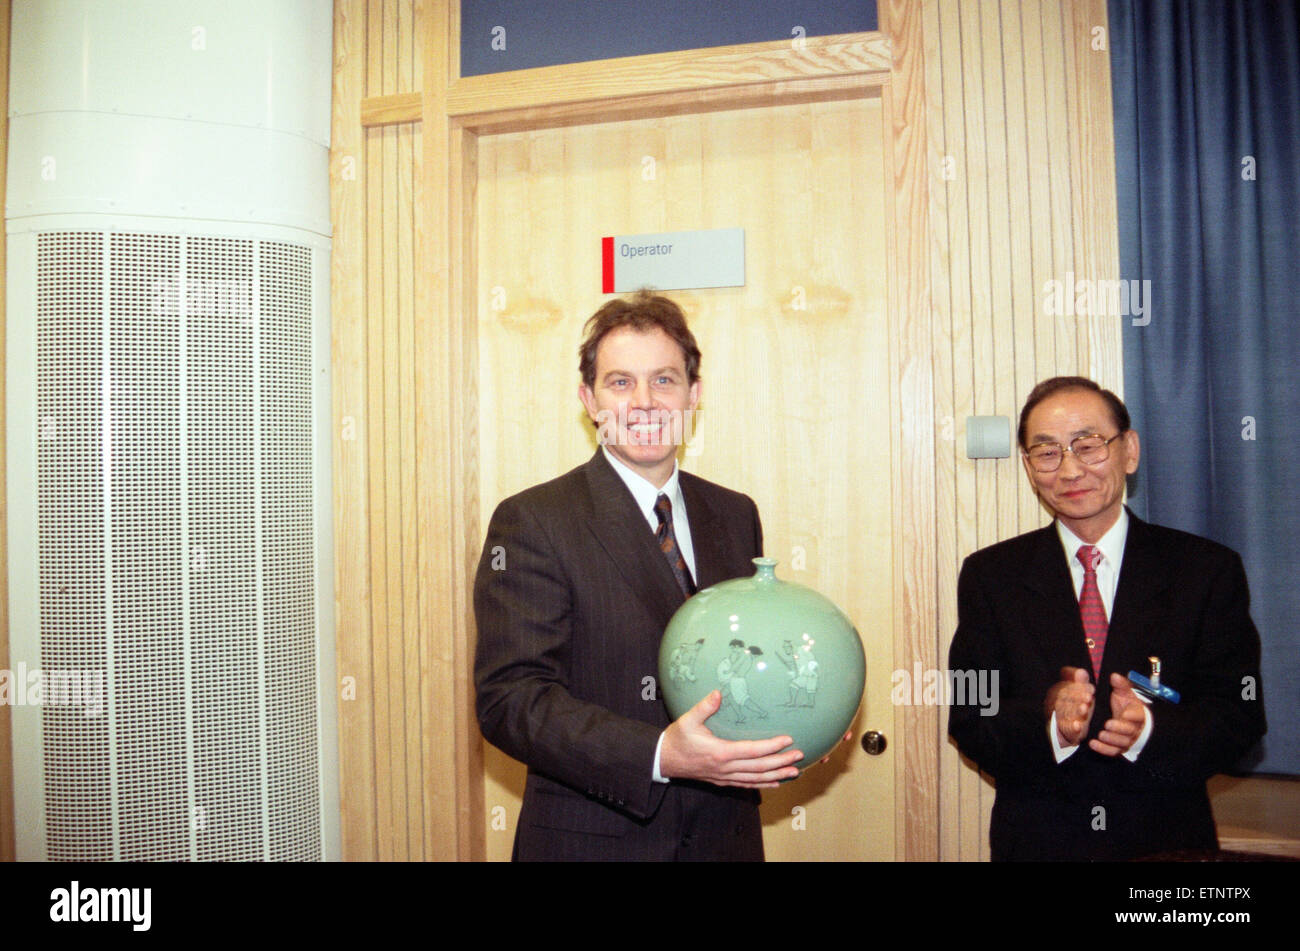 Tony Blair officially opens the Samsung training centre at Wynyard with the vase that Mr J K Kang, Chairman of Samsung, - Stock Image